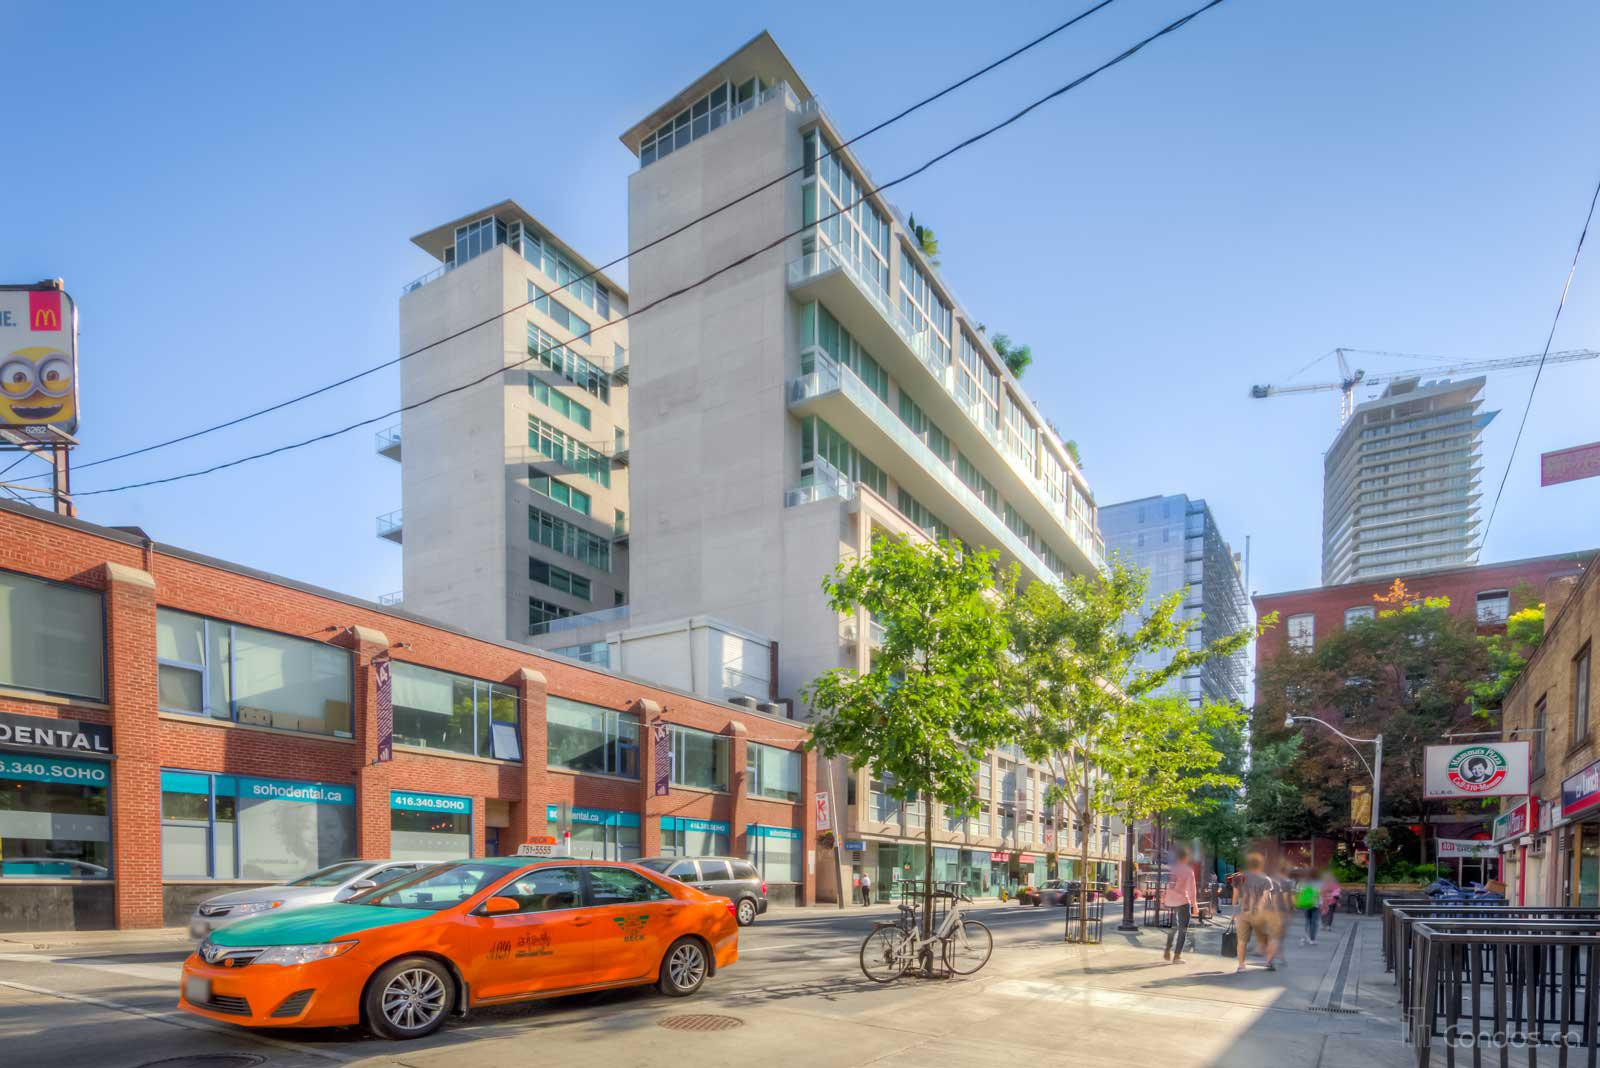 District Lofts at 388 Richmond St W, Toronto 1